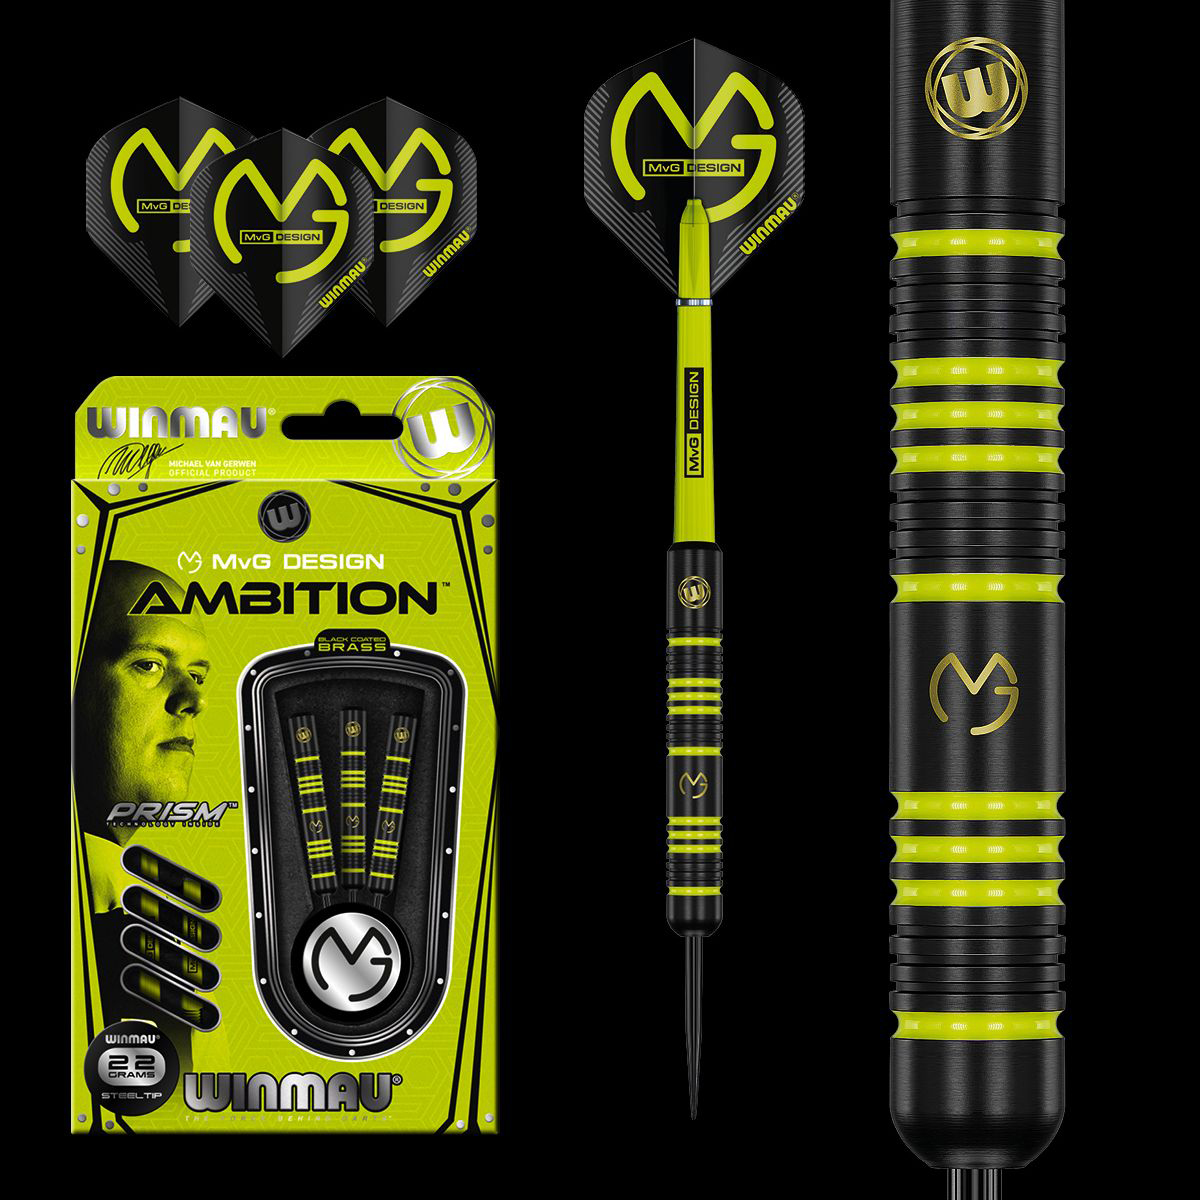 MvG Ambition Black Coated Brass Darts 22g